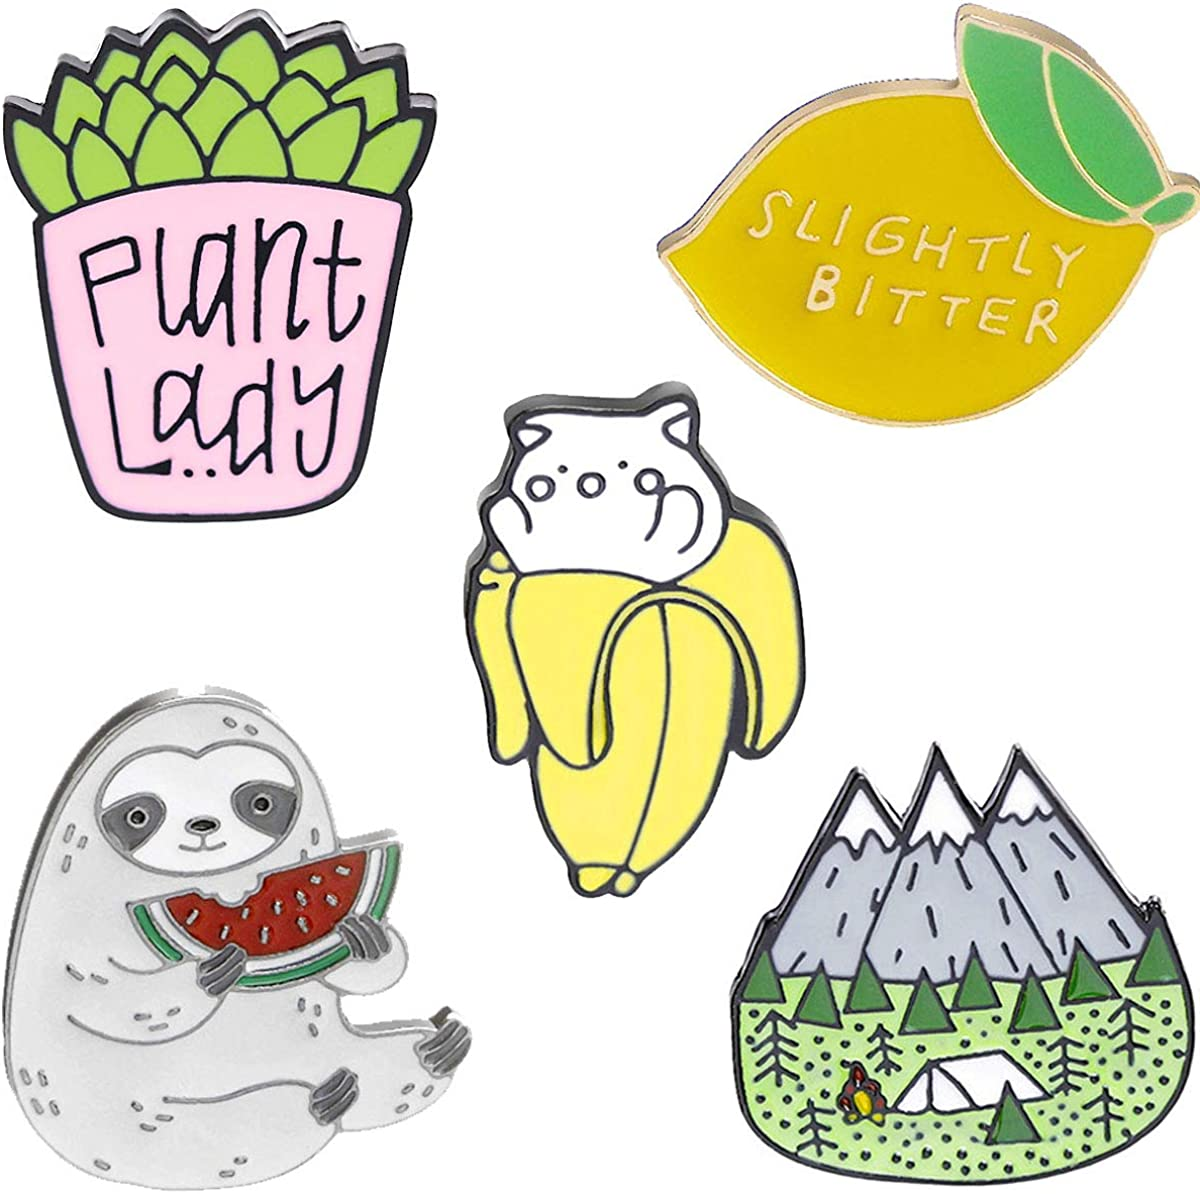 Cute Colorful Enamel Brooch Pin Set, 5 pcs Lovely Pins Badges for Girls Boys Women Clothes Backpacks Decor …